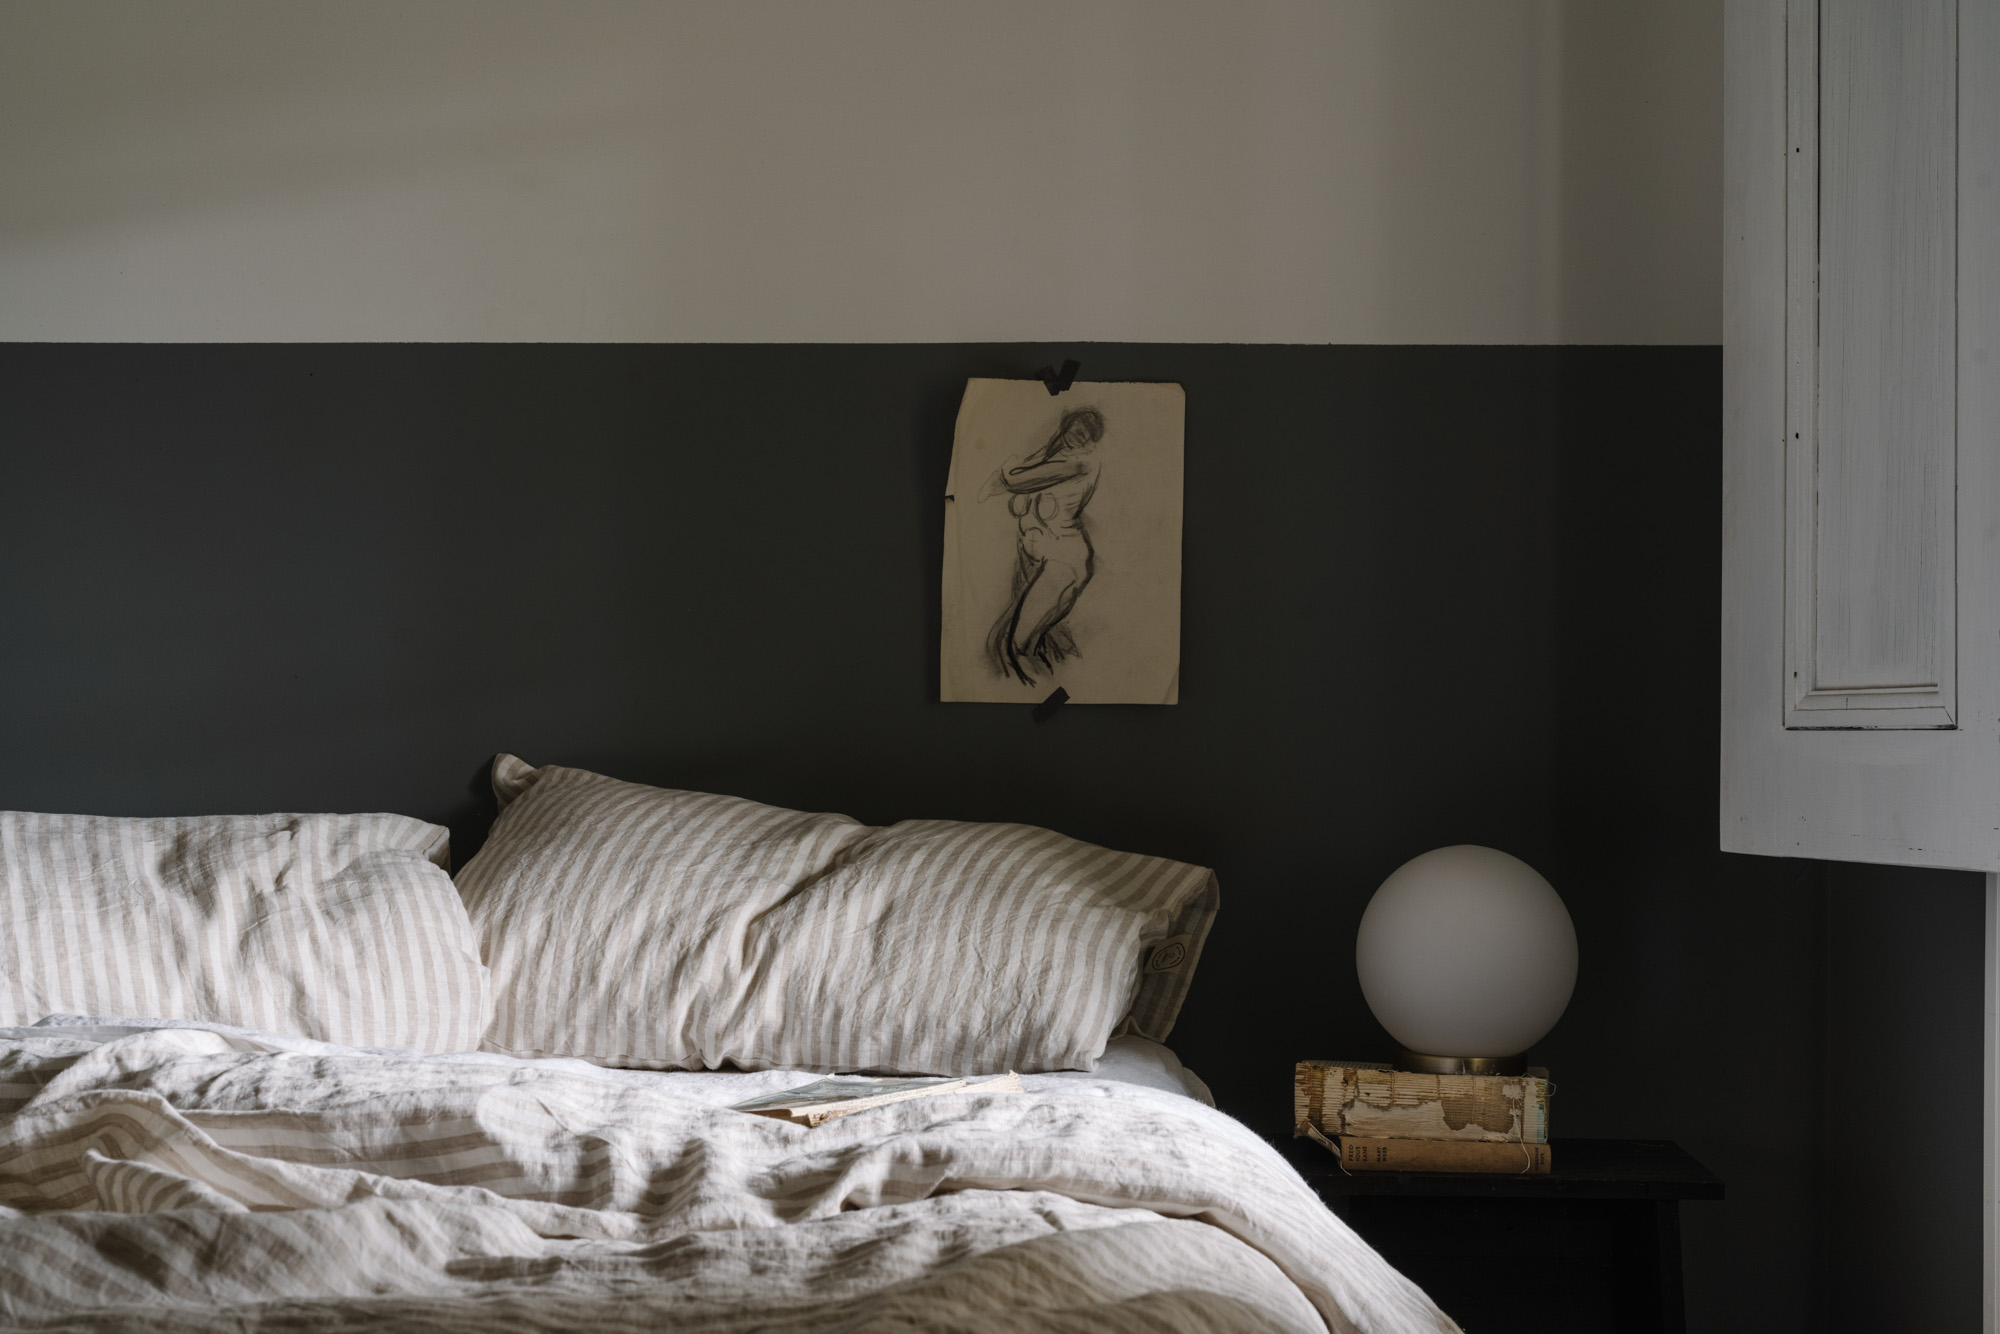 Marnie Hawson, Melbourne ethical photographer for Major Minor wares - small batch linen. Shot at The Estate Trentham with styling by Inside Story (Lynda Gardener & Belle Hemming Bright).